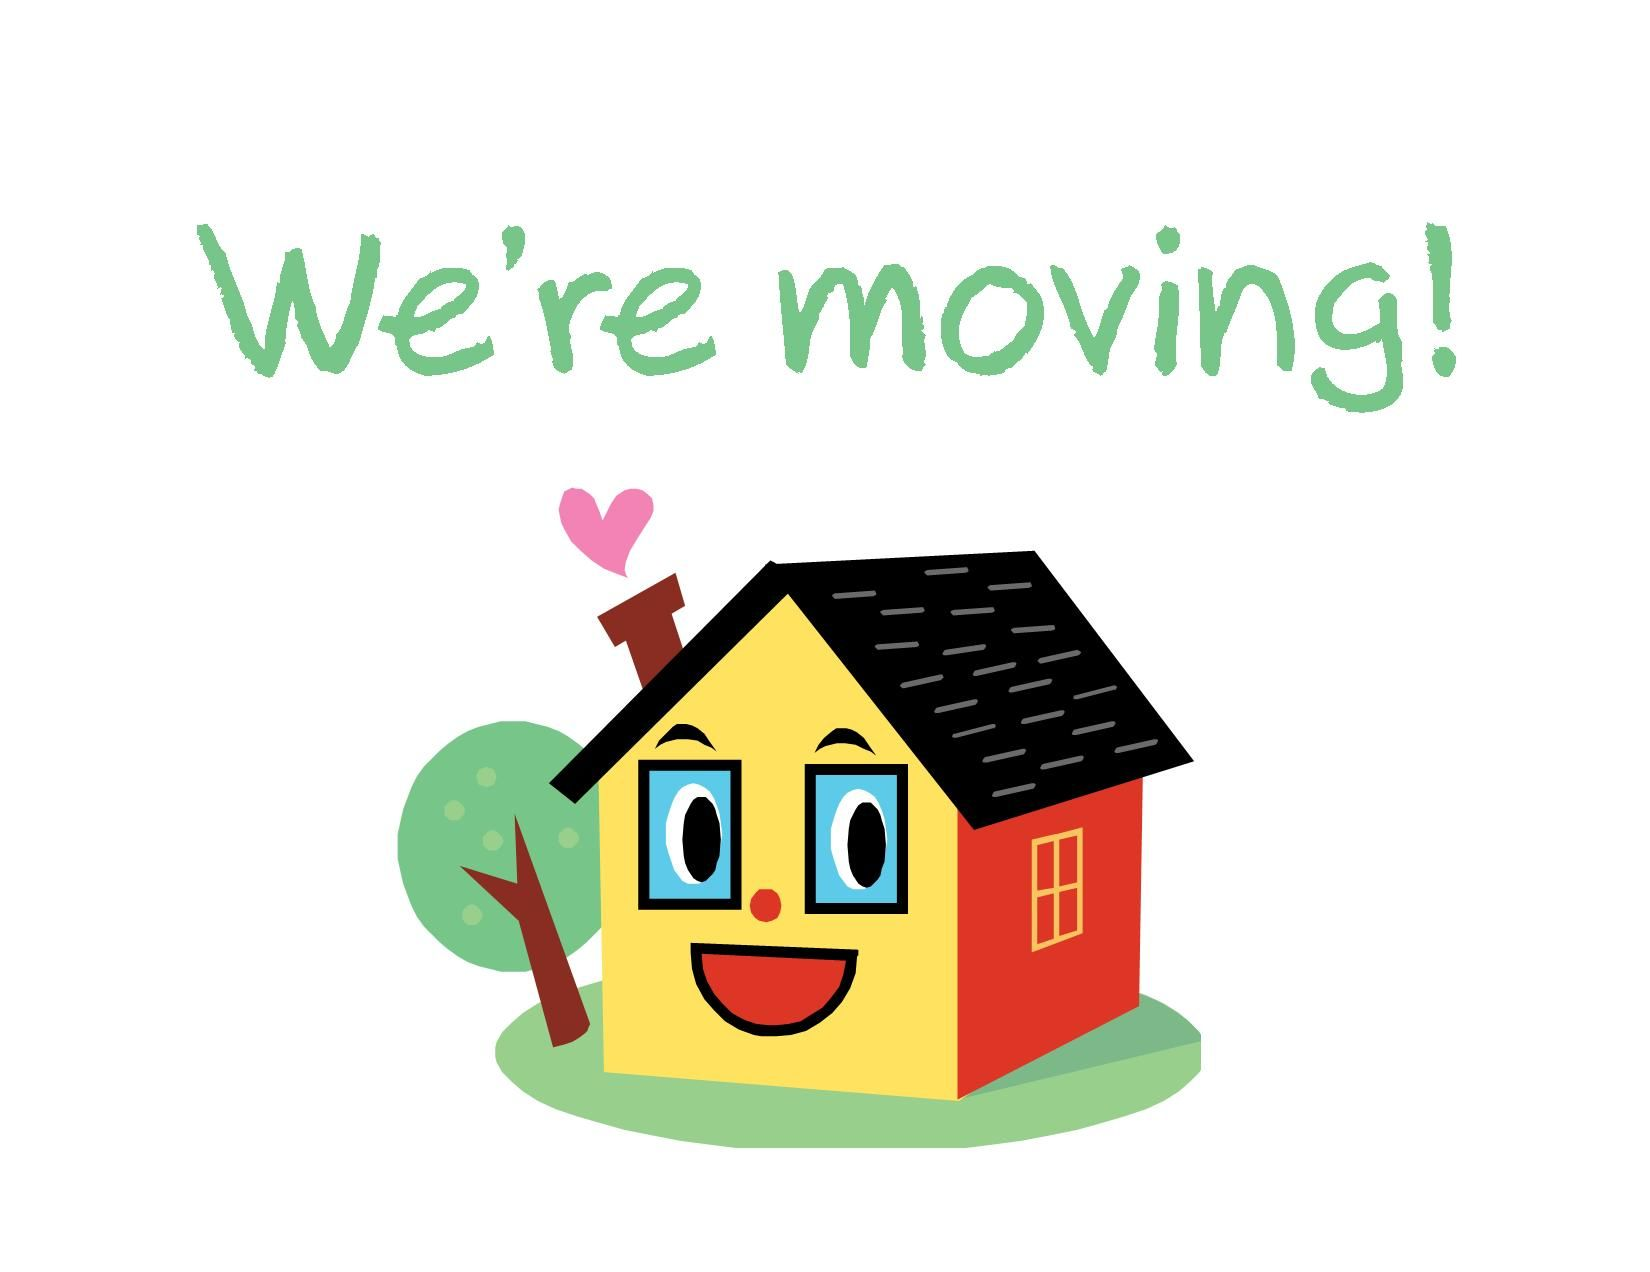 moving house clipart free clip art images [ 1650 x 1272 Pixel ]